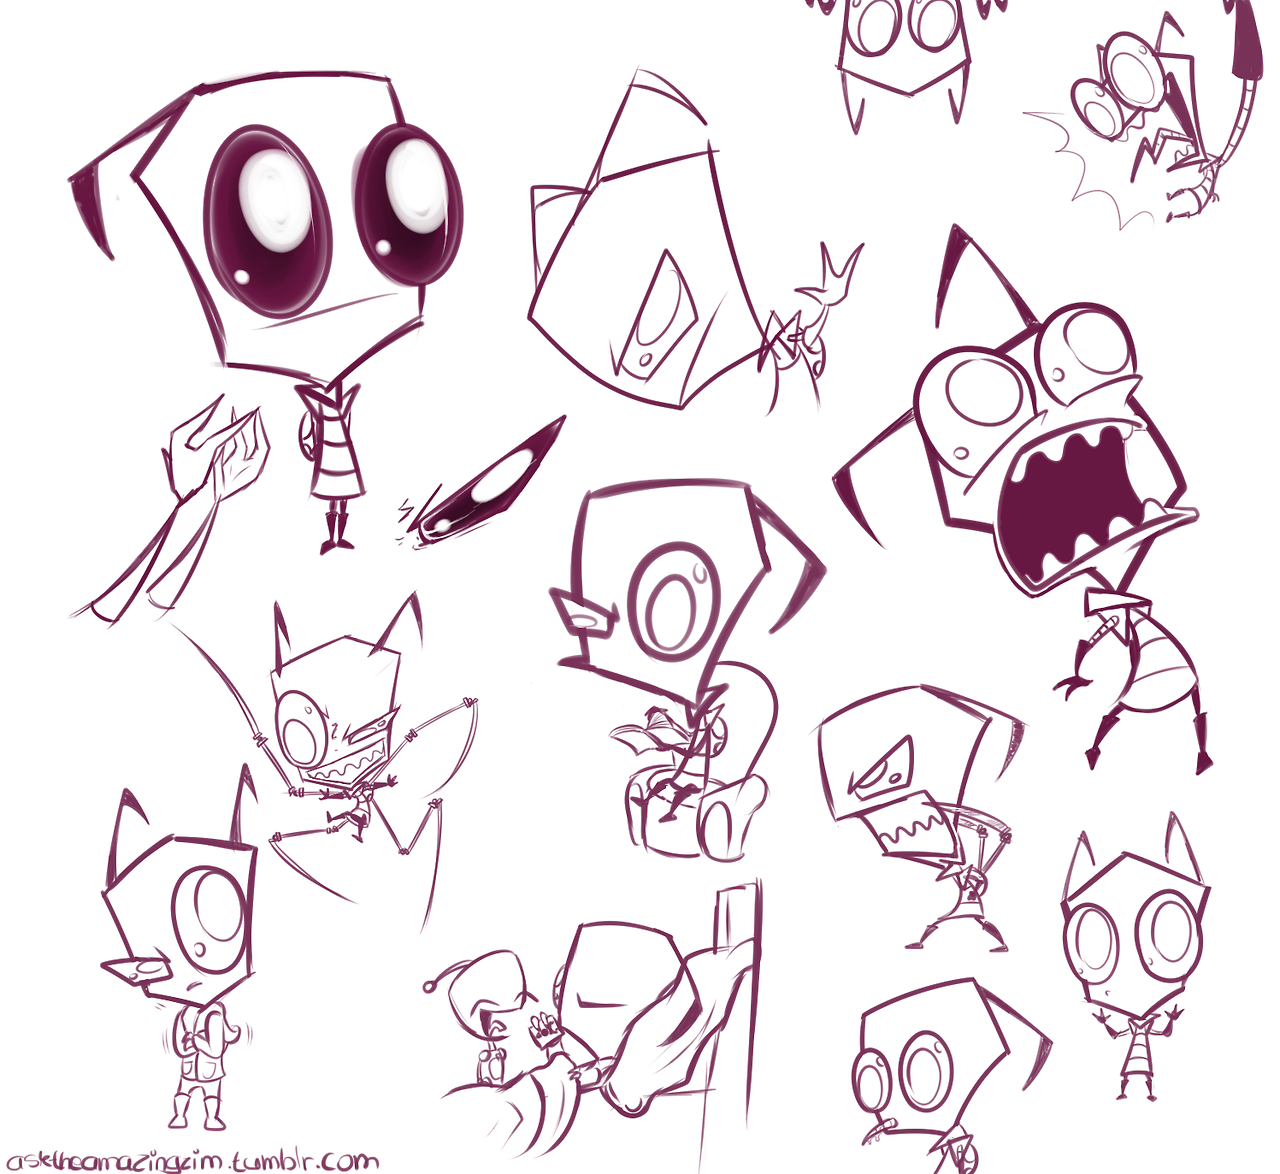 media in zim This sub is for all who enjoy the many quirks of the numerous characters in the show invader zim  one example would be bonus features from the media blasters dvd.